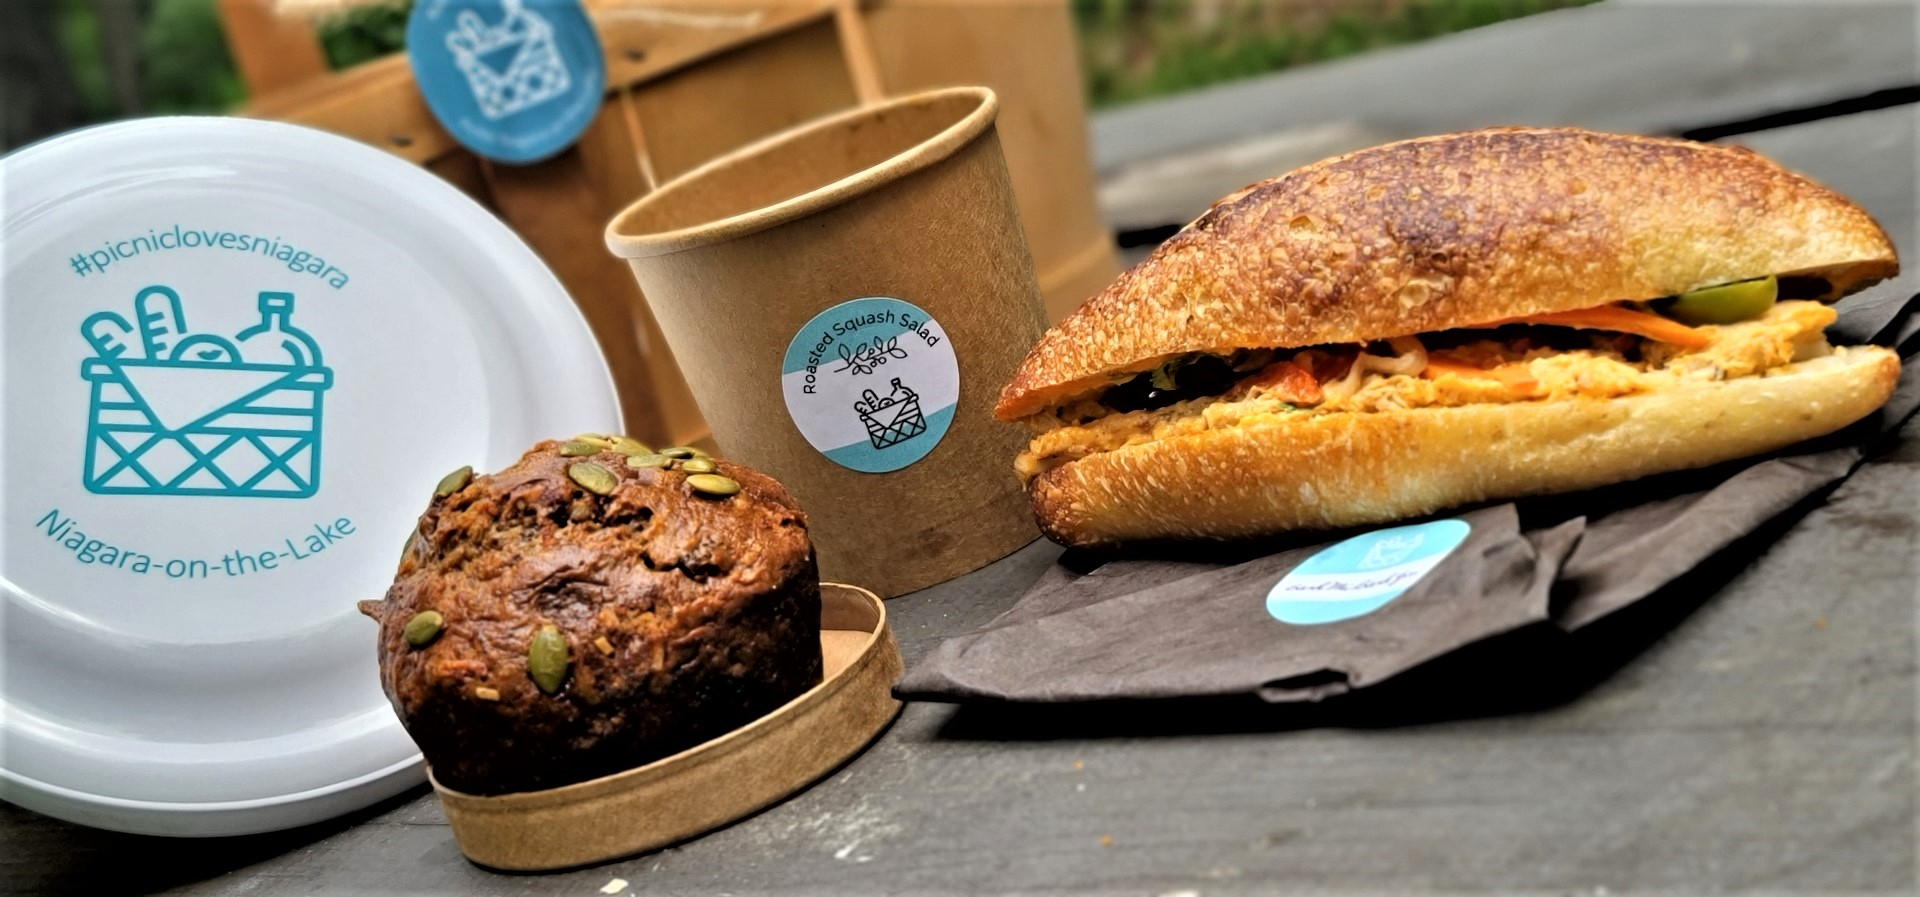 muffin, banh mi, frisbee on a picnic table